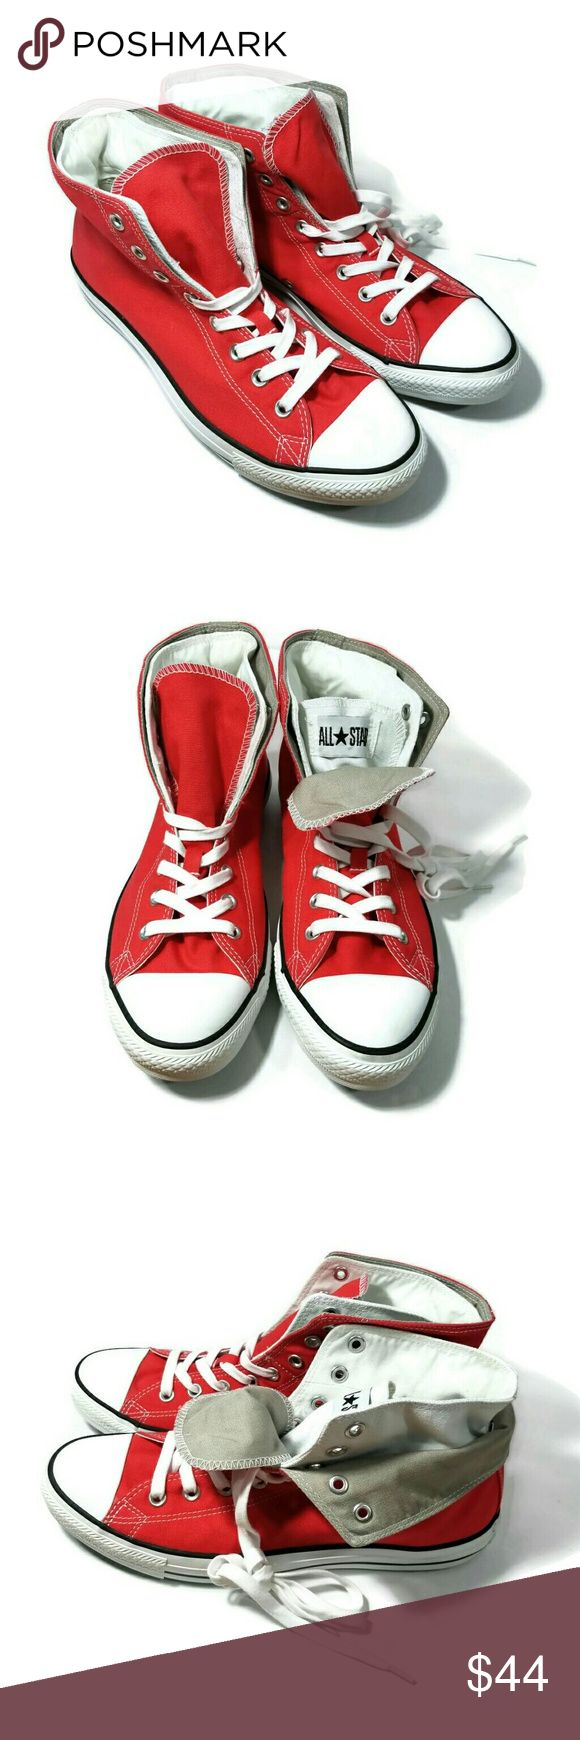 New Converse All Star New without box. Unisex. Size 10 for mens. Size 12 for womens. ♣️ Converse Shoes Sneakers